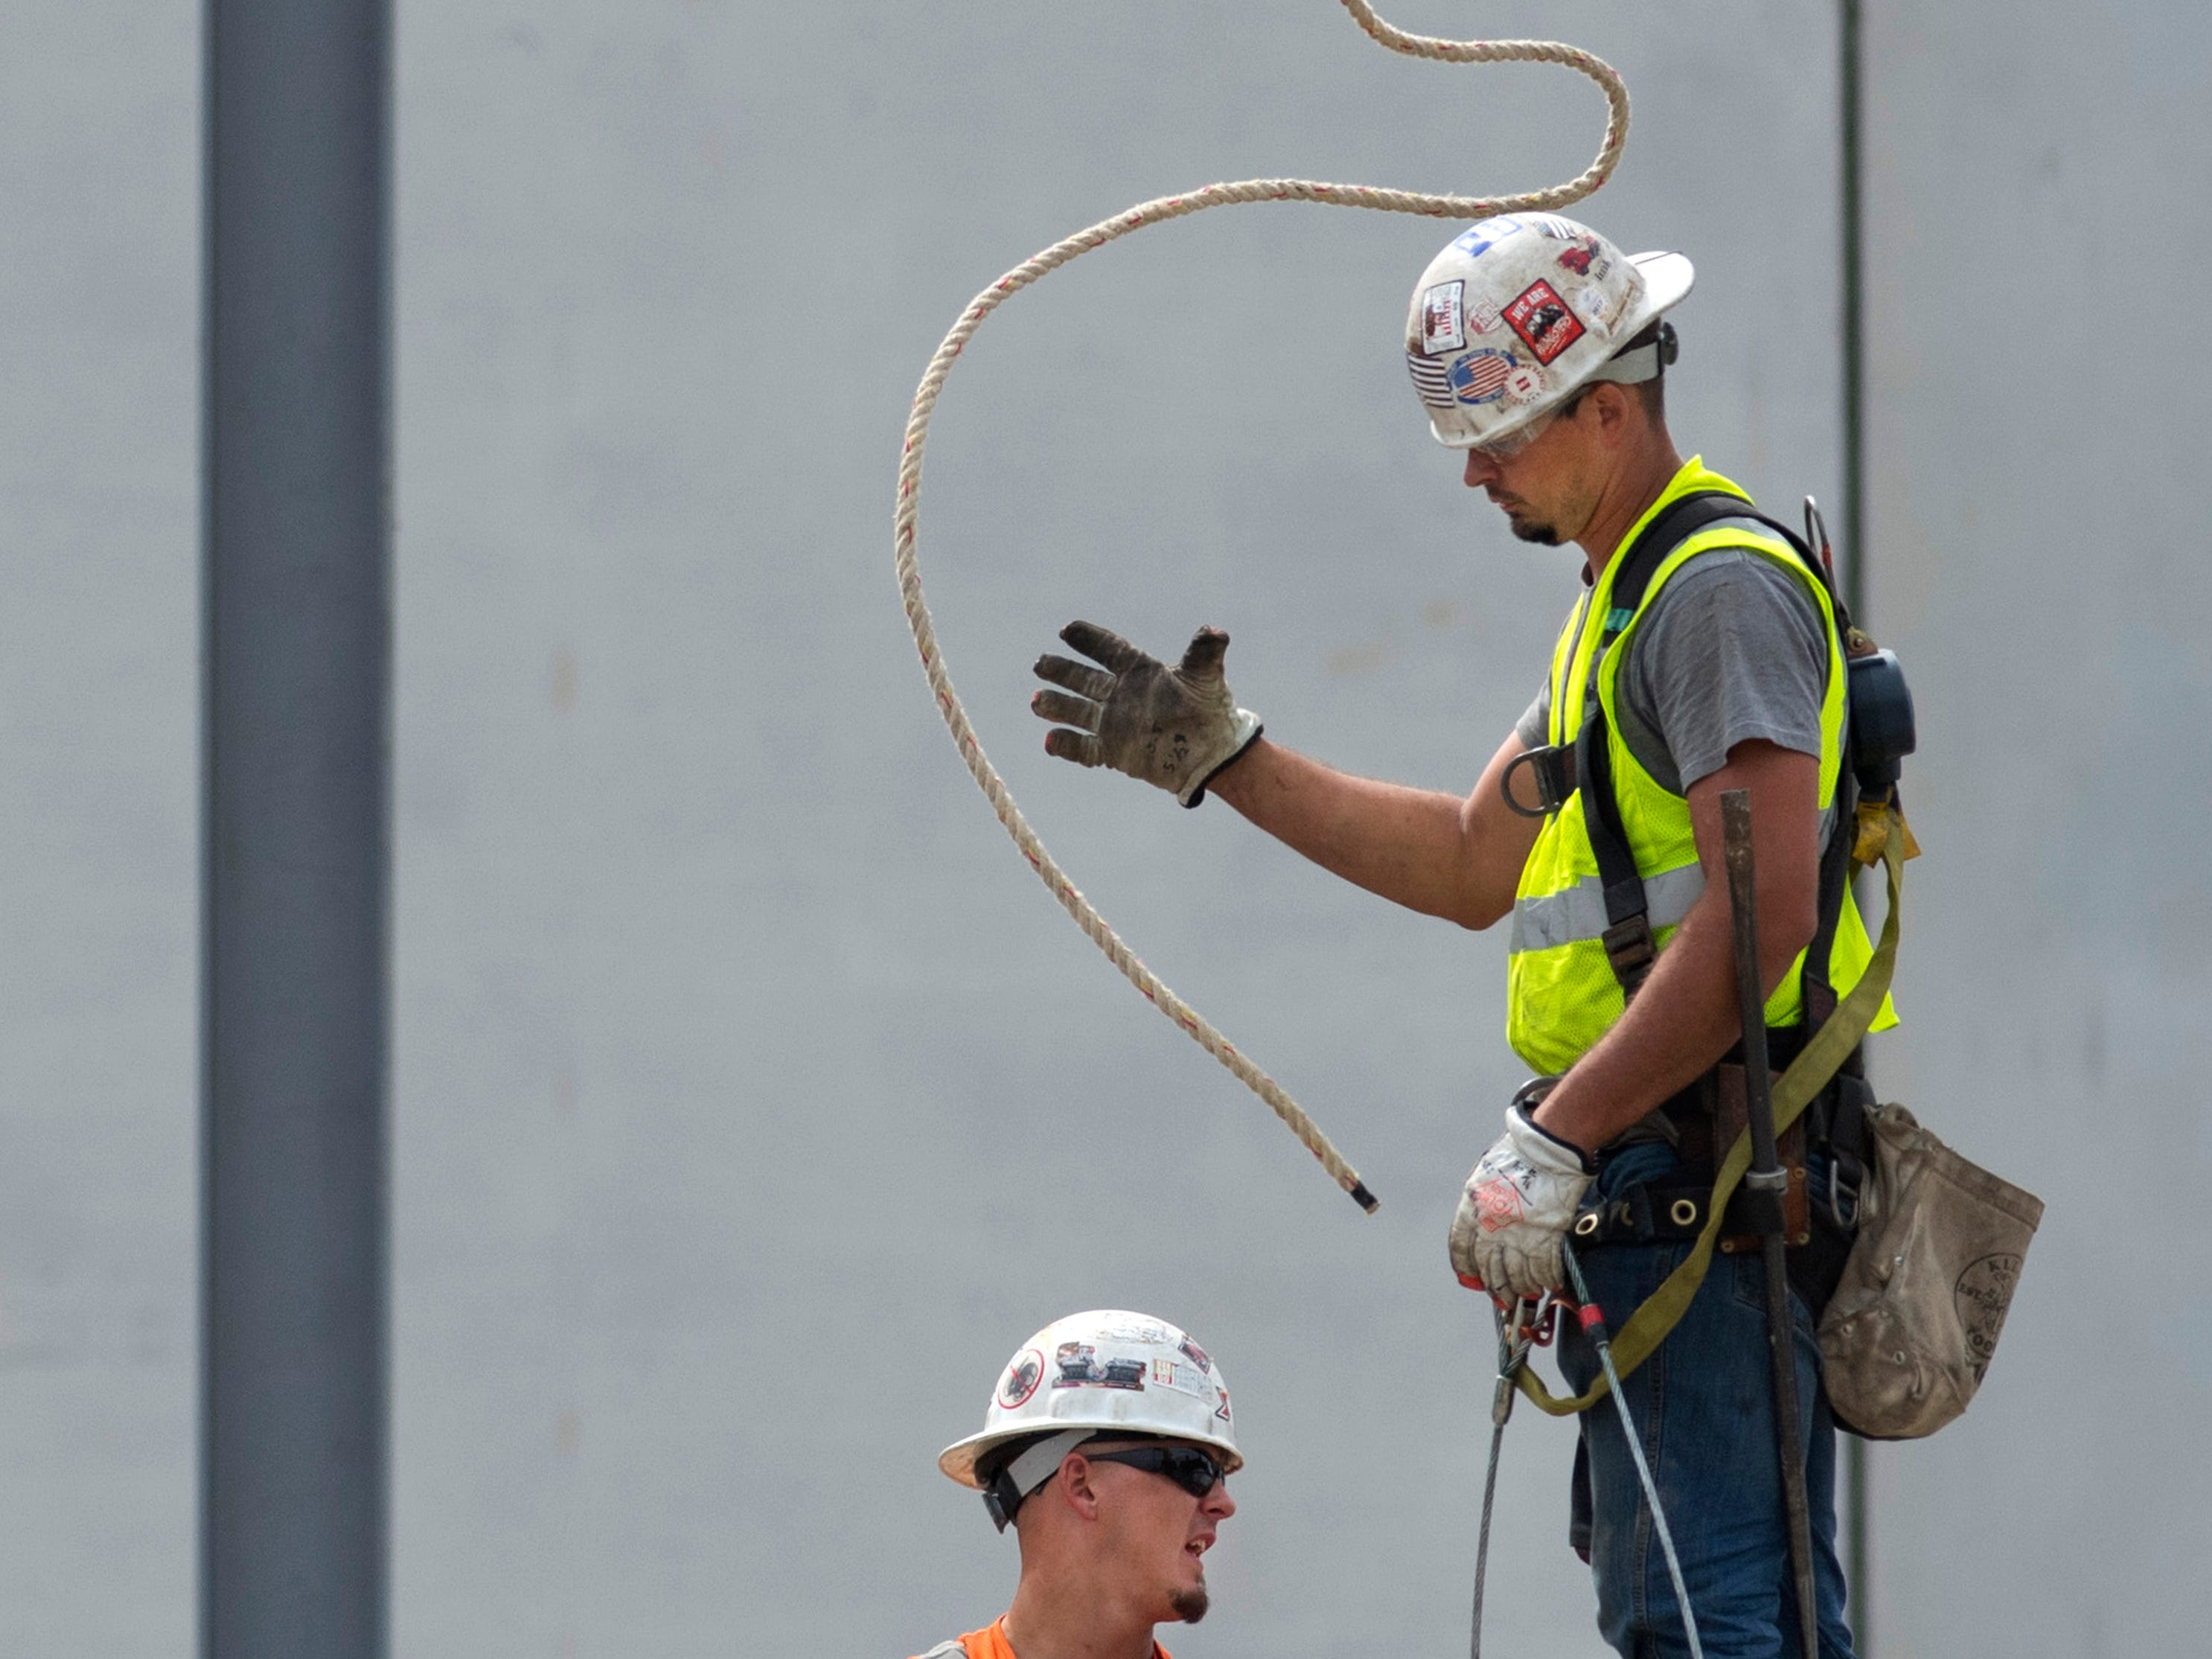 Brothers Seth Callaway, left, and Adam Callaway install steel beams at the under-construction St. Vincent Evansville YMCA in Downtown Evansville Wednesday afternoon. Skanska is in charge of the build of the 10,000 square-foot project that is on target to be completed in August of 2019. The area where the beams are being assembled will include a training kitchen, multi-purpose room and various other work spaces.